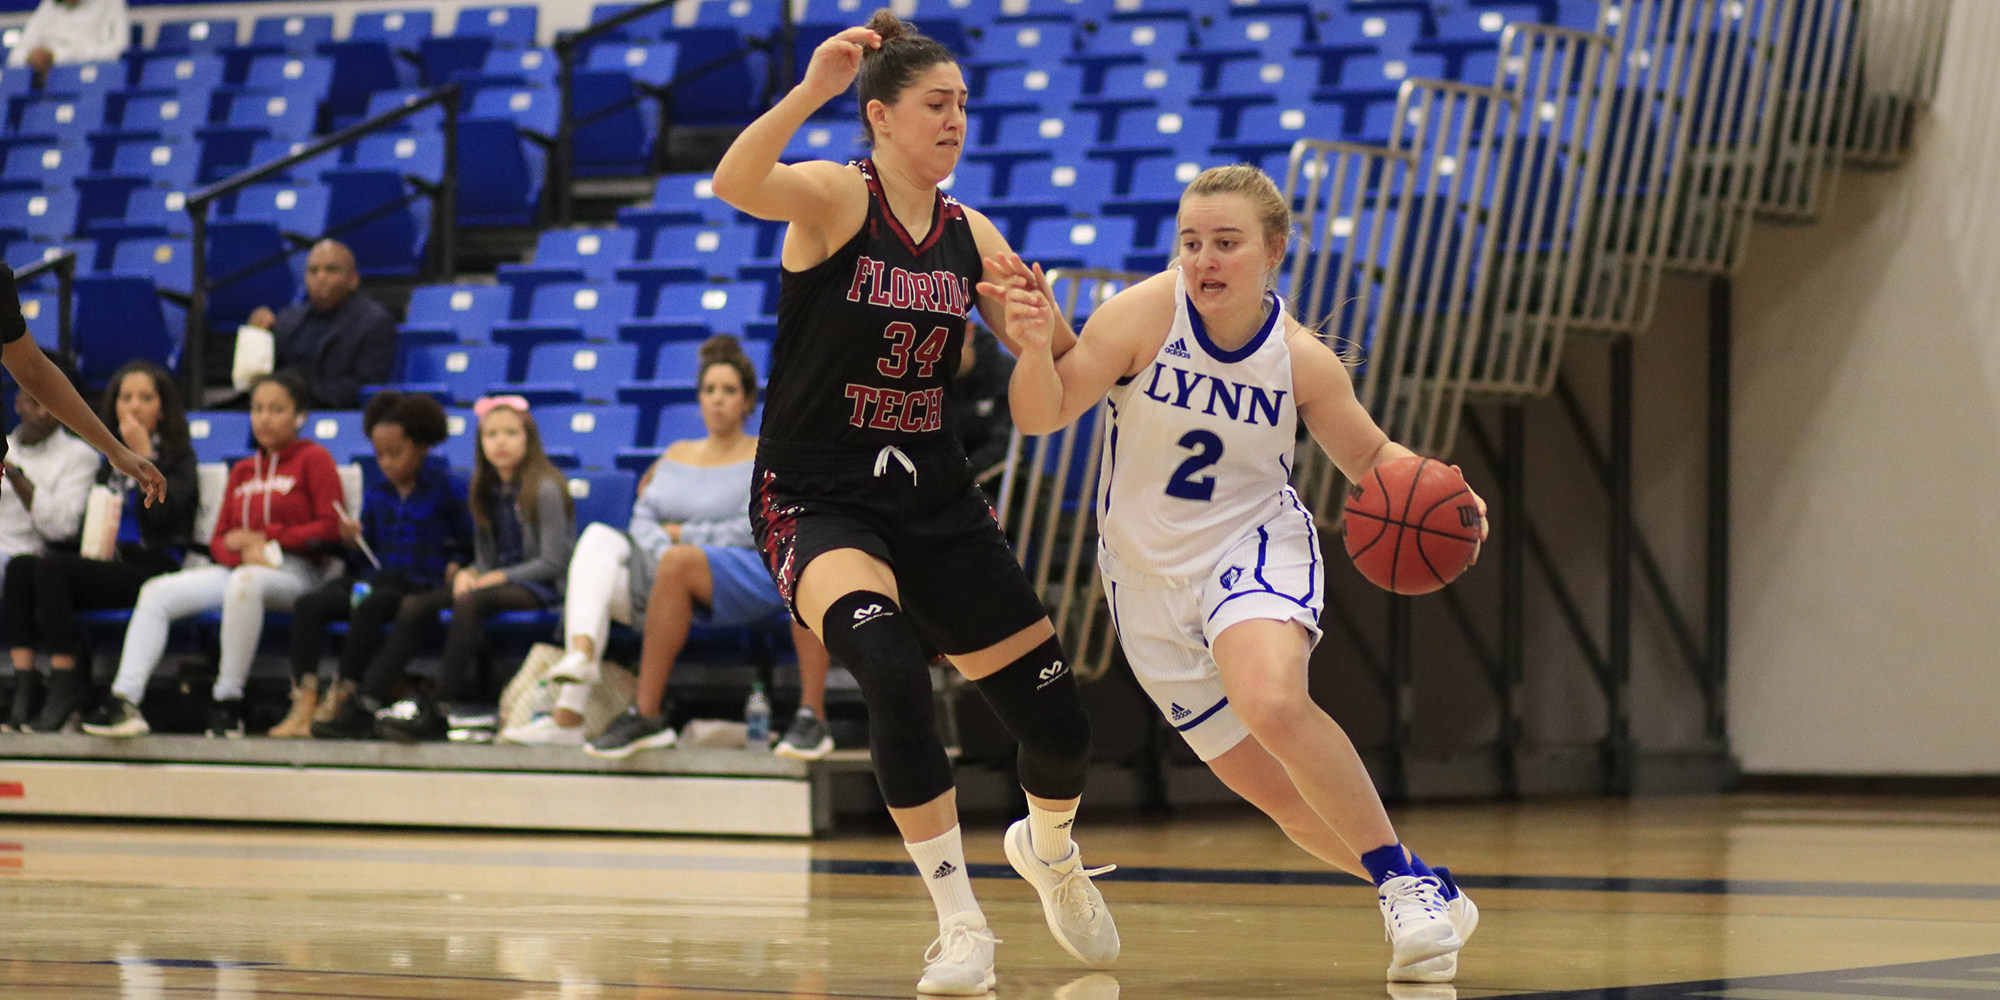 Women's Basketball Completes Season Sweep of Florida Tech Behind Webb's Five Threes